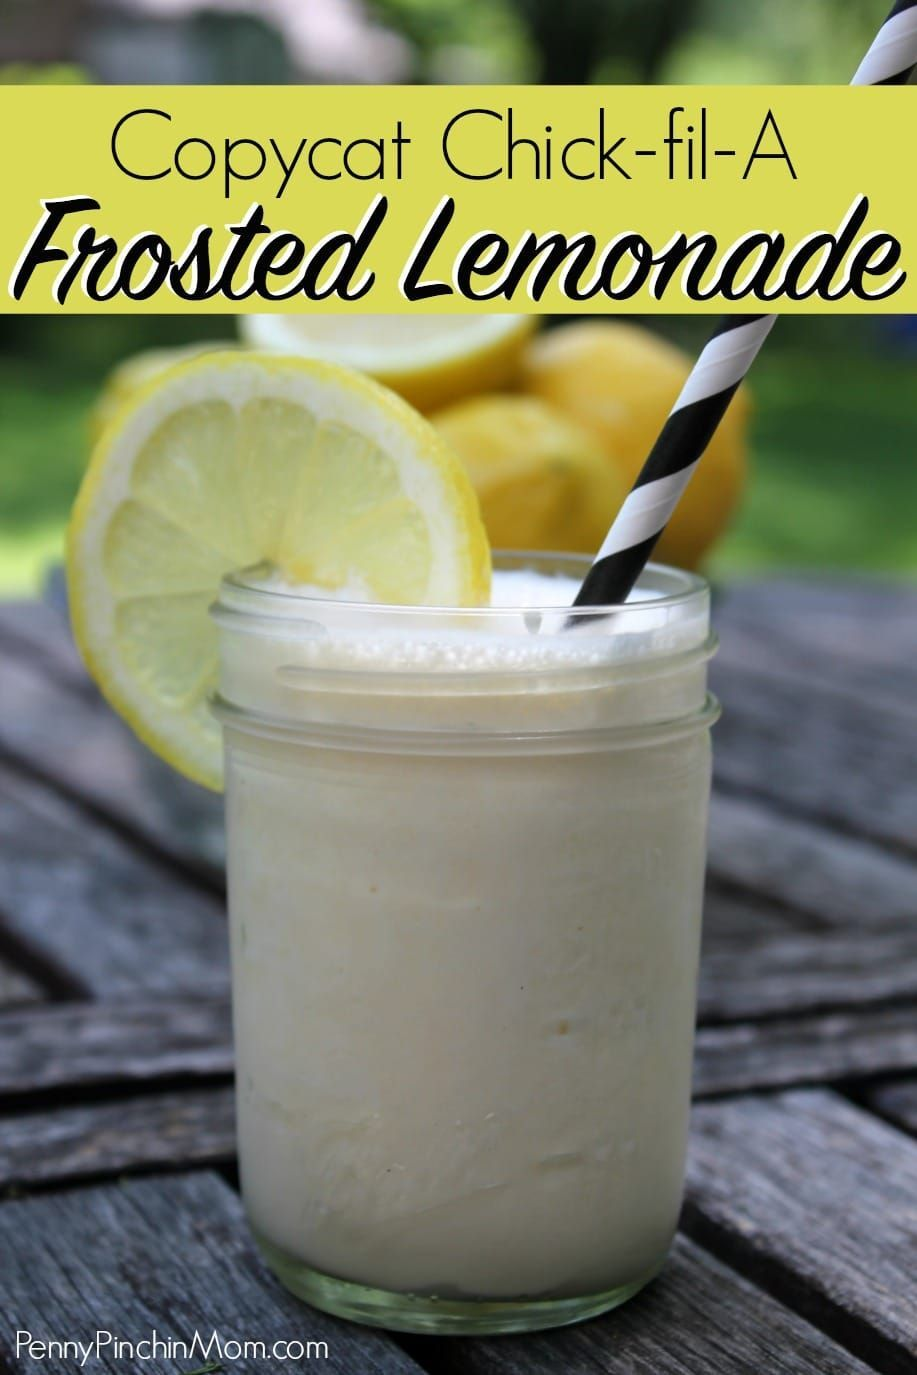 CopyCat Chick-Fil-A Frosted Lemonade #frozenlemonade Copycat Recipe: Chick-fil-a Frozen Lemonade! This easy lemonade recipe is perfect for spring or summer! Find out how you can easily make this frozen lemonade for pennies a serving right at home. Copycat recipes | Chick-fil-a recipes| Frozen Lemonade | Summer Drinks | DIY | Homemade | lemonade | lemon recipes | frozen drink recipes #chickfila #lemonade #drinkrecipes #frozenlemonade